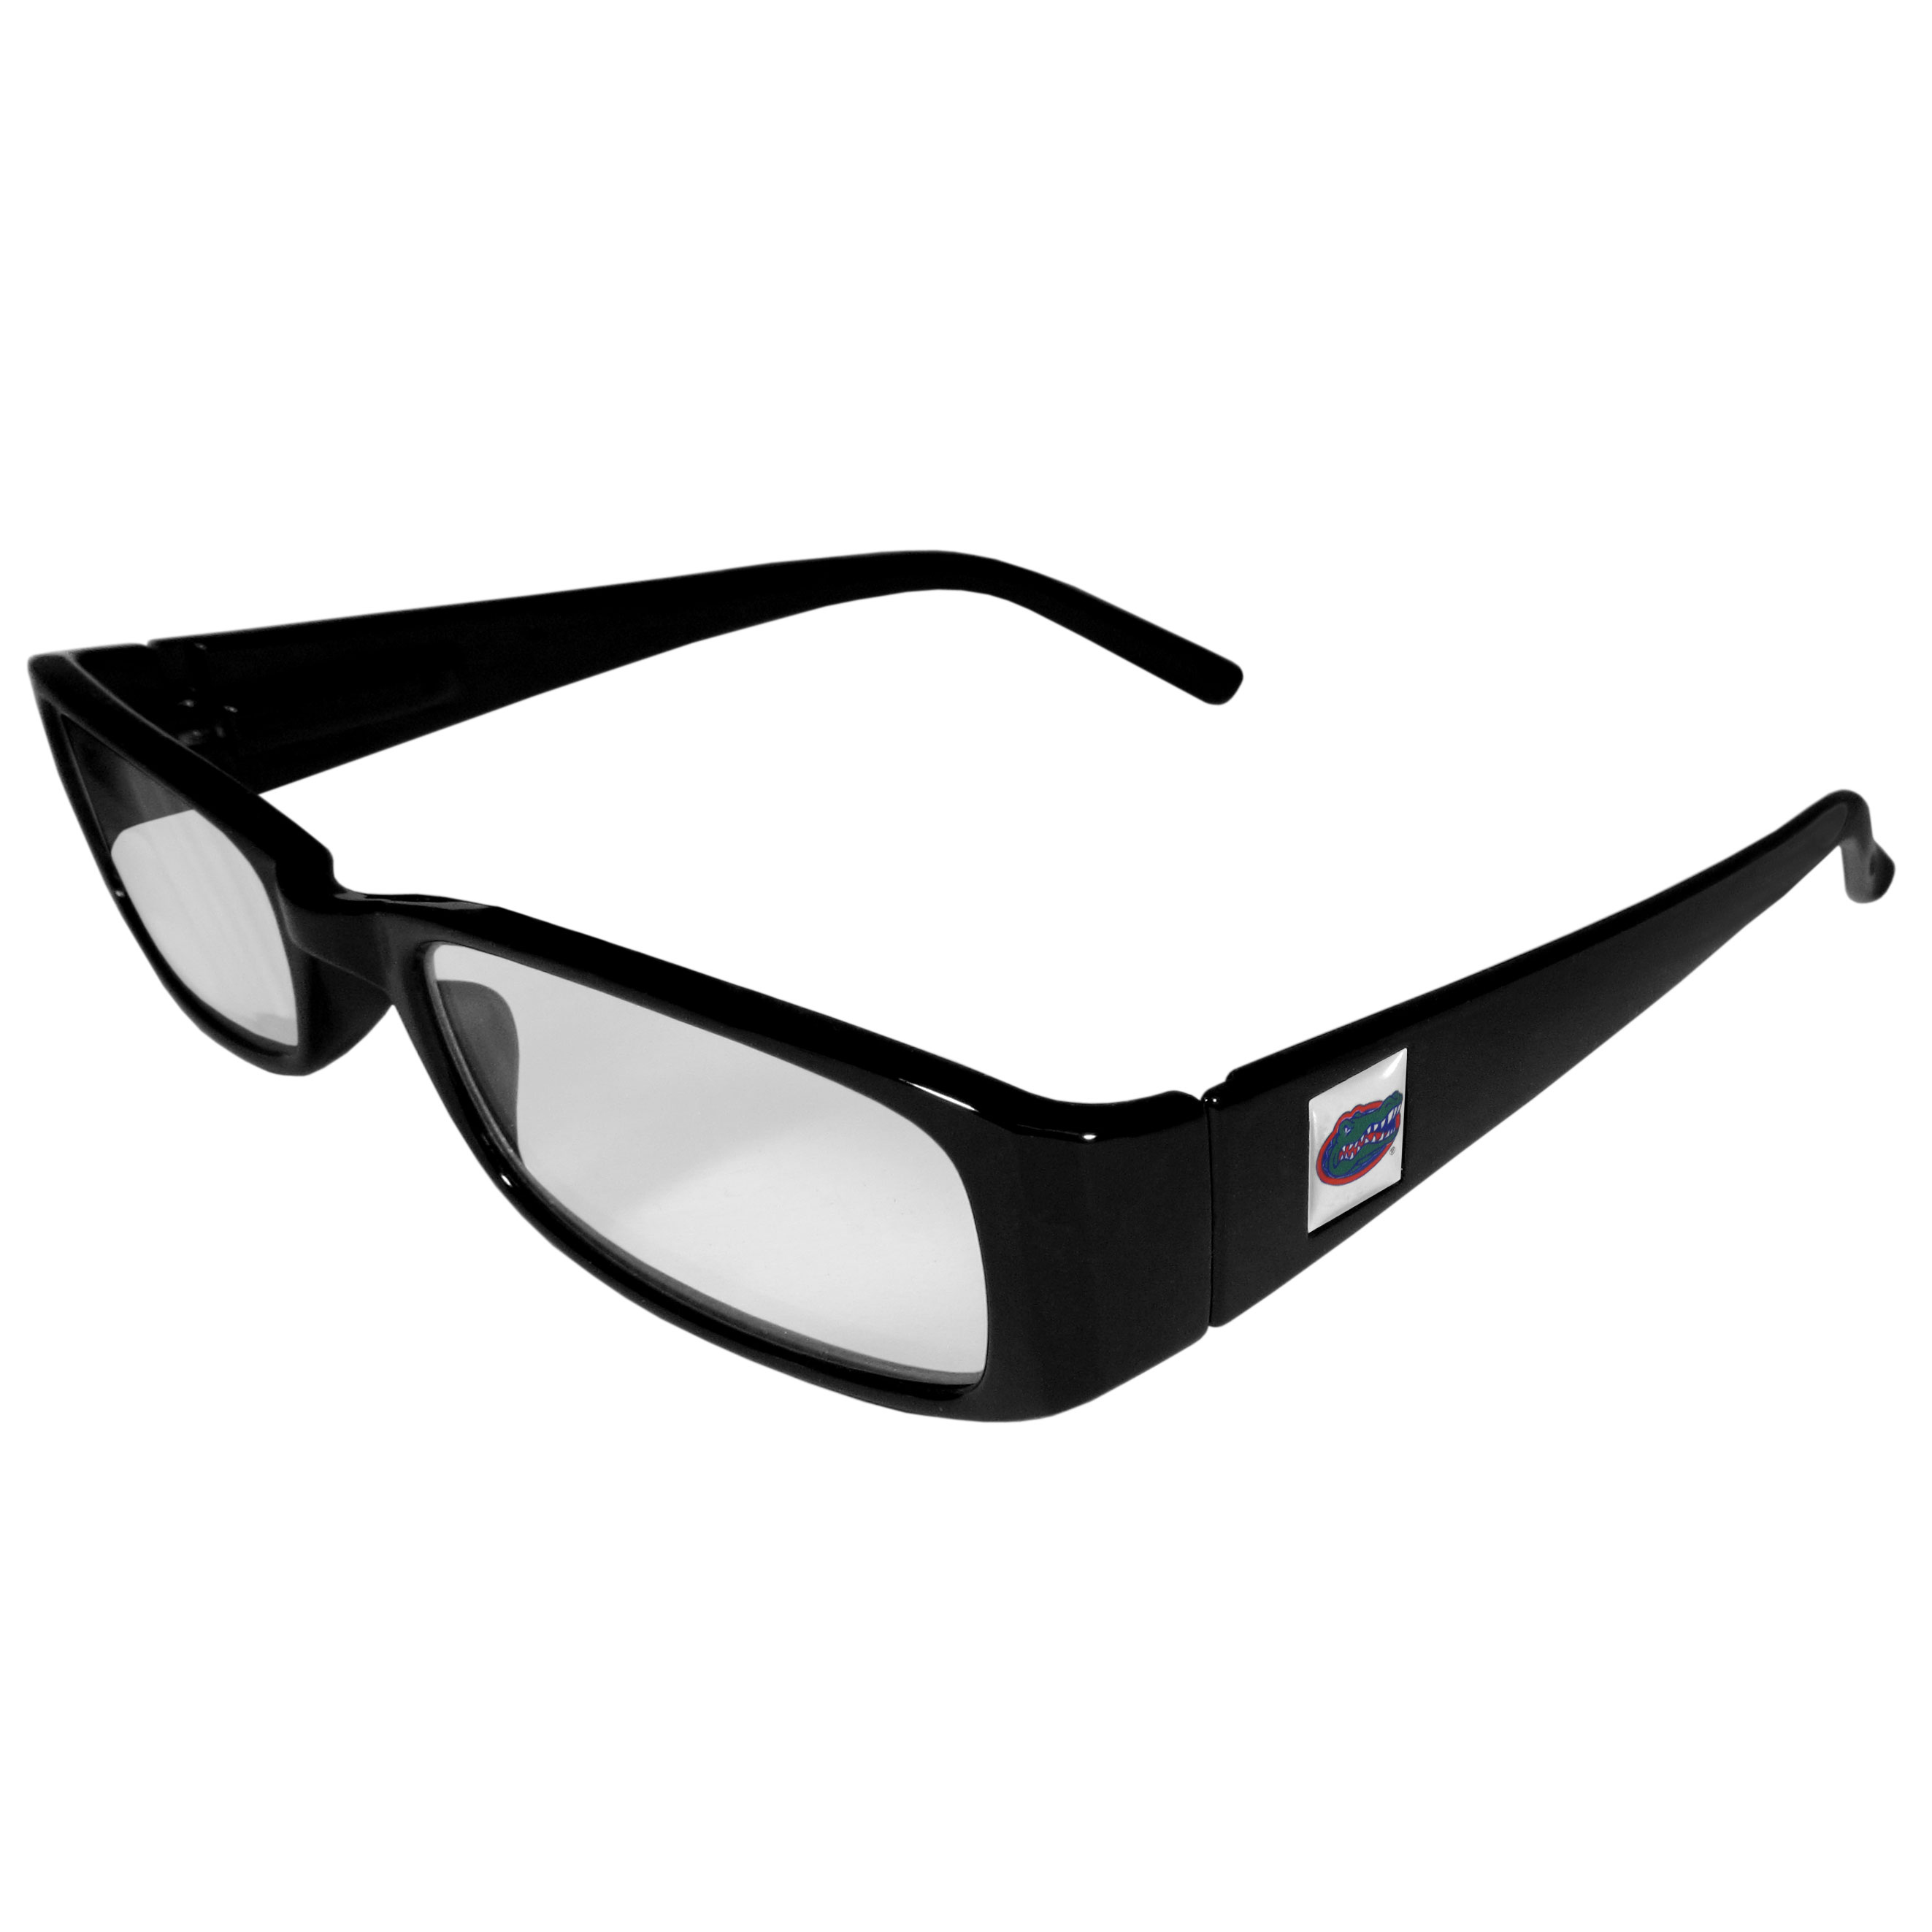 Florida Gators Black Reading Glasses +2.50 - Our Florida Gators reading glasses are 5.25 inches wide and feature the team logo on each arm. Magnification Power 2.50